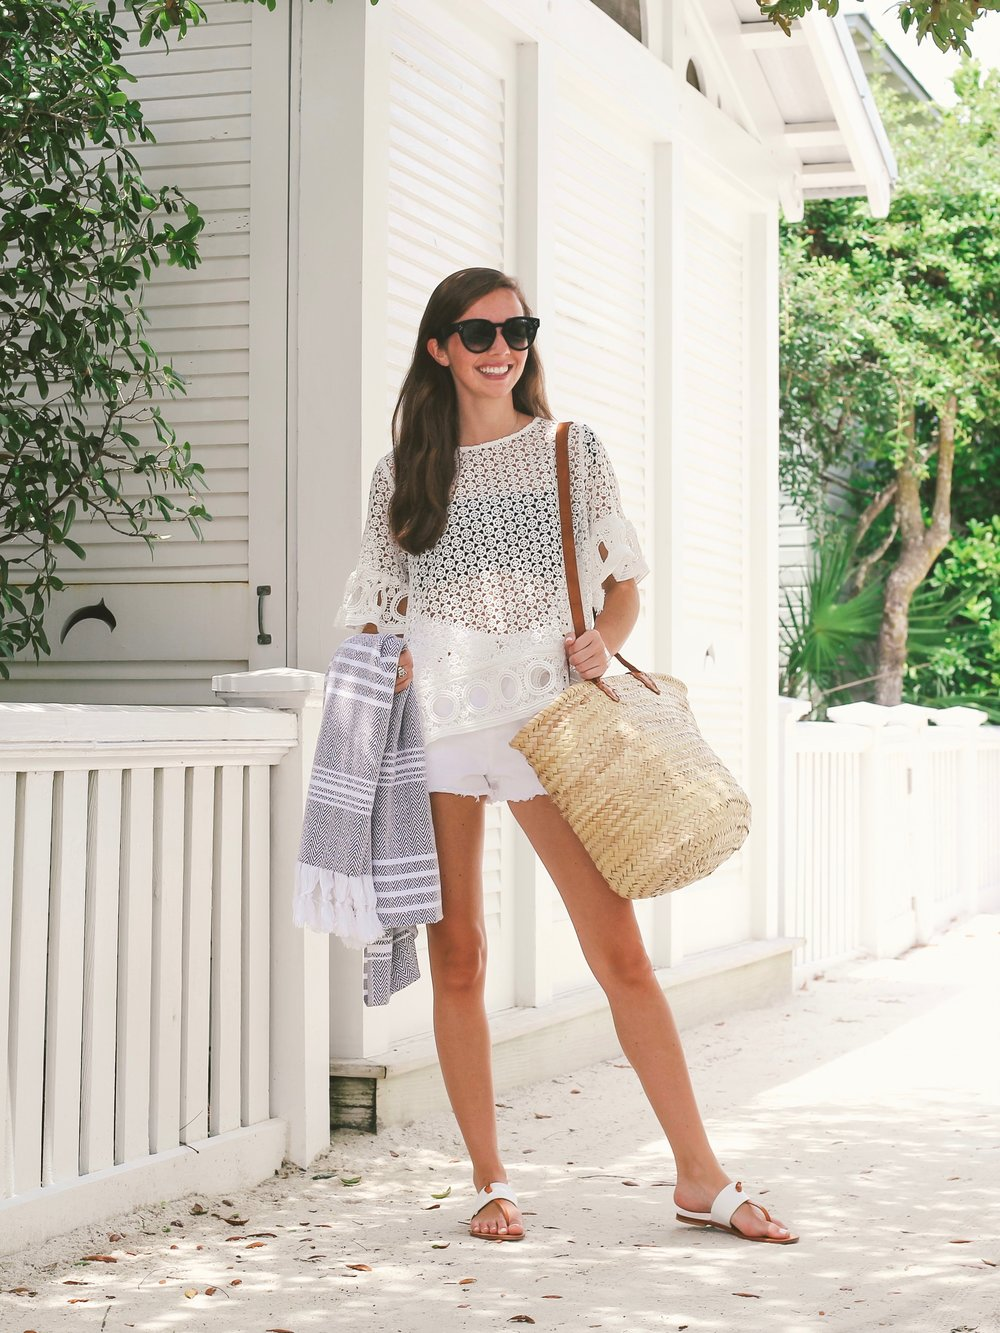 LCB STYLE FASHION BLOGGER SEASIDE FLORIDA 30A (1 of 12).jpg